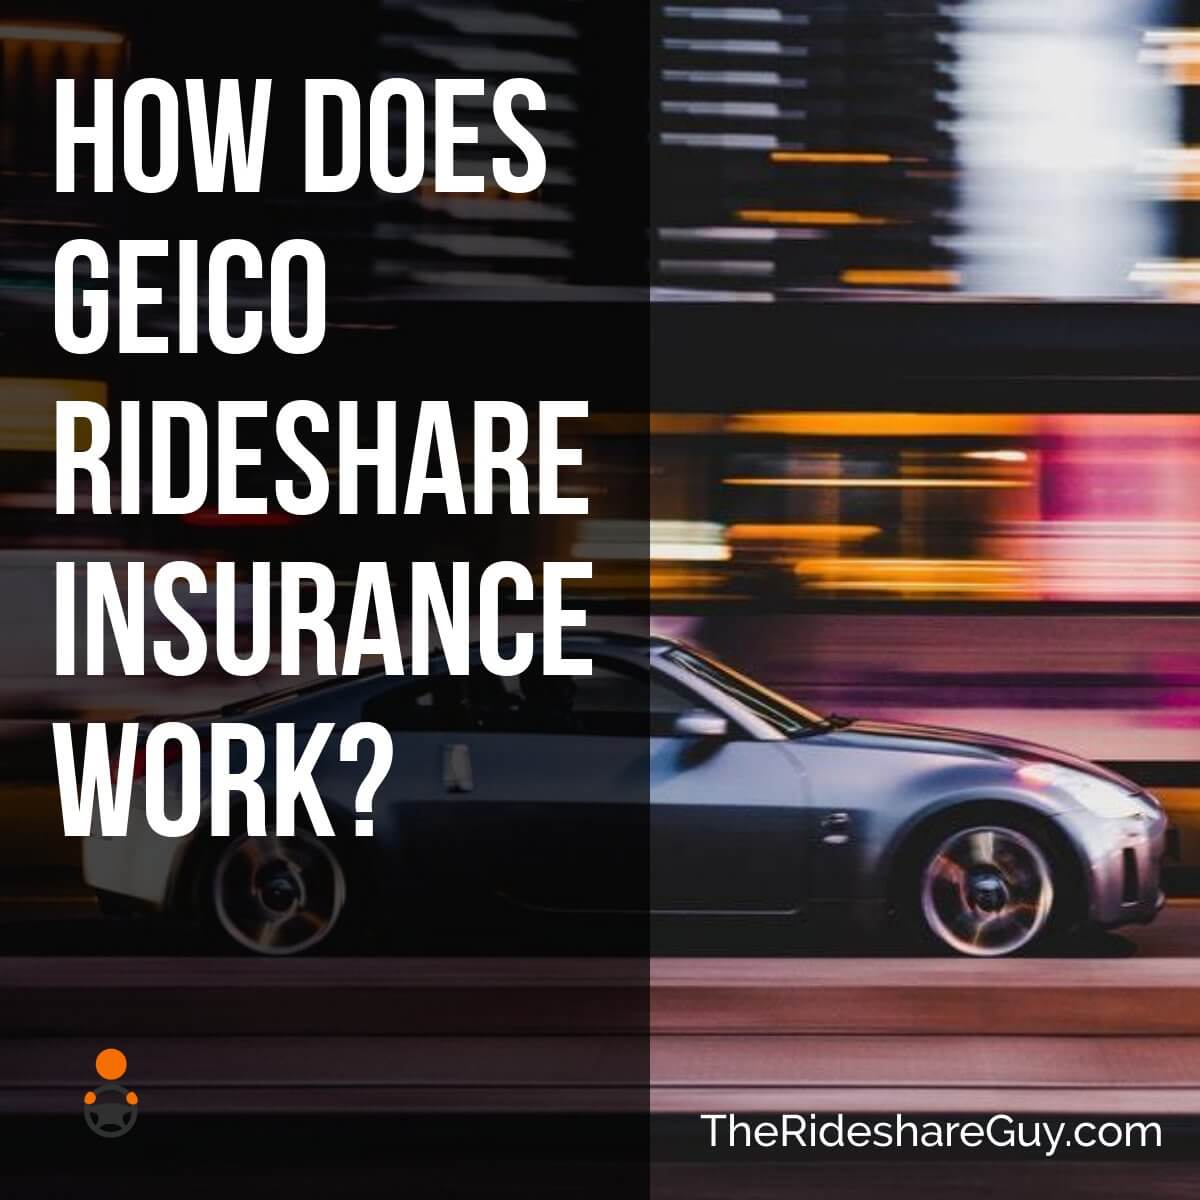 Rideshare insurance can be a complex topic, but as more carriers launch policies, there are more options and resources available for drivers every day.  Today, RSG contributor Melissa Berry takes a look at GEICO's rideshare insurance policy.  For a full listing of rideshare insurance options in your state, head over to our Insurance Marketplace.